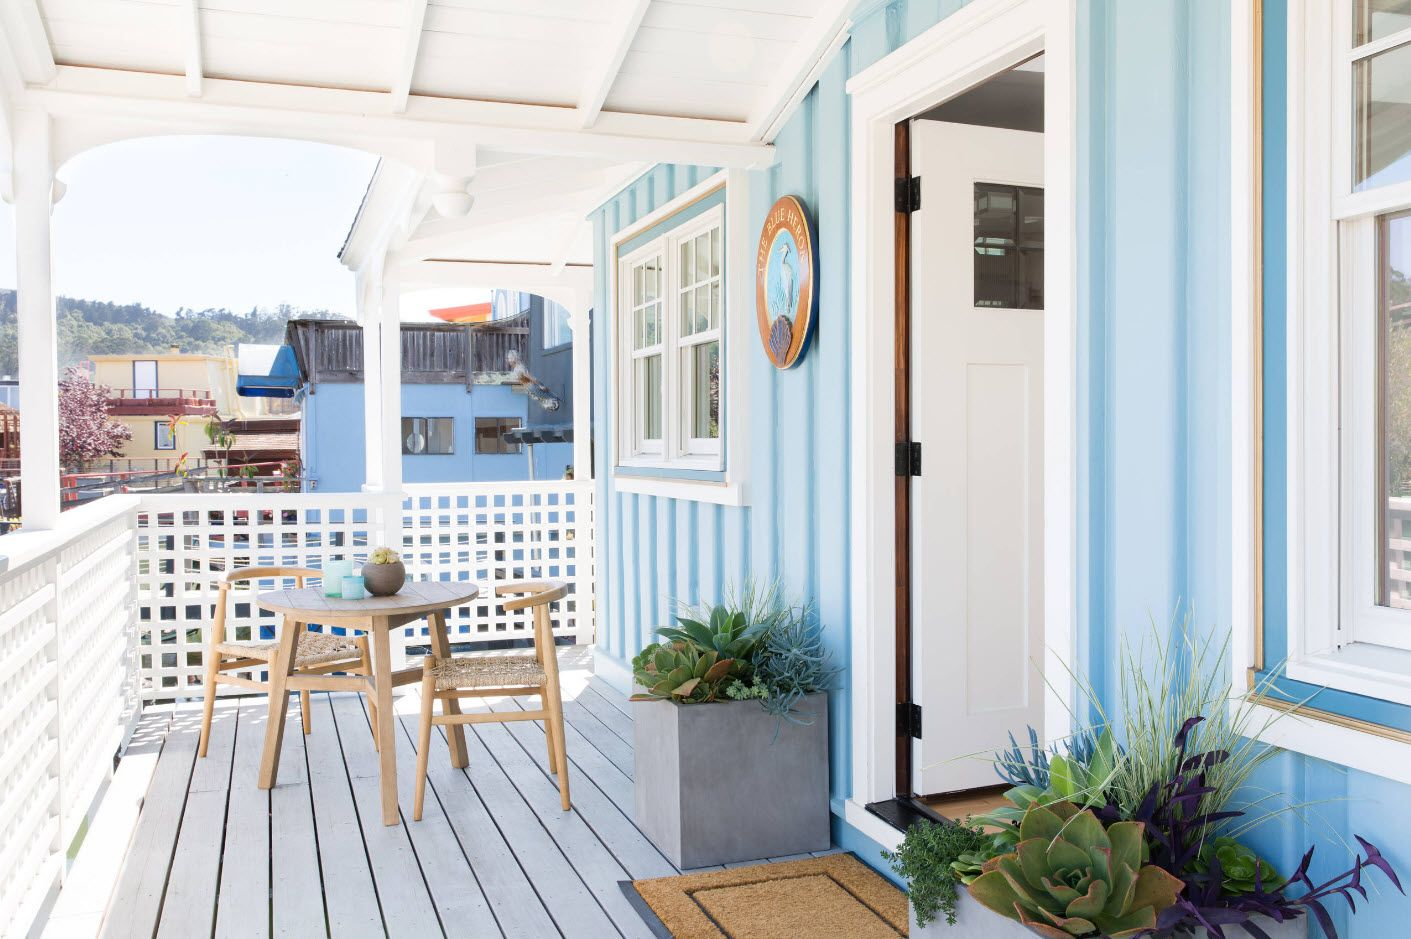 Cute pale blue and white stripes to decorate the porch with platform for relaxing and gathering with friends